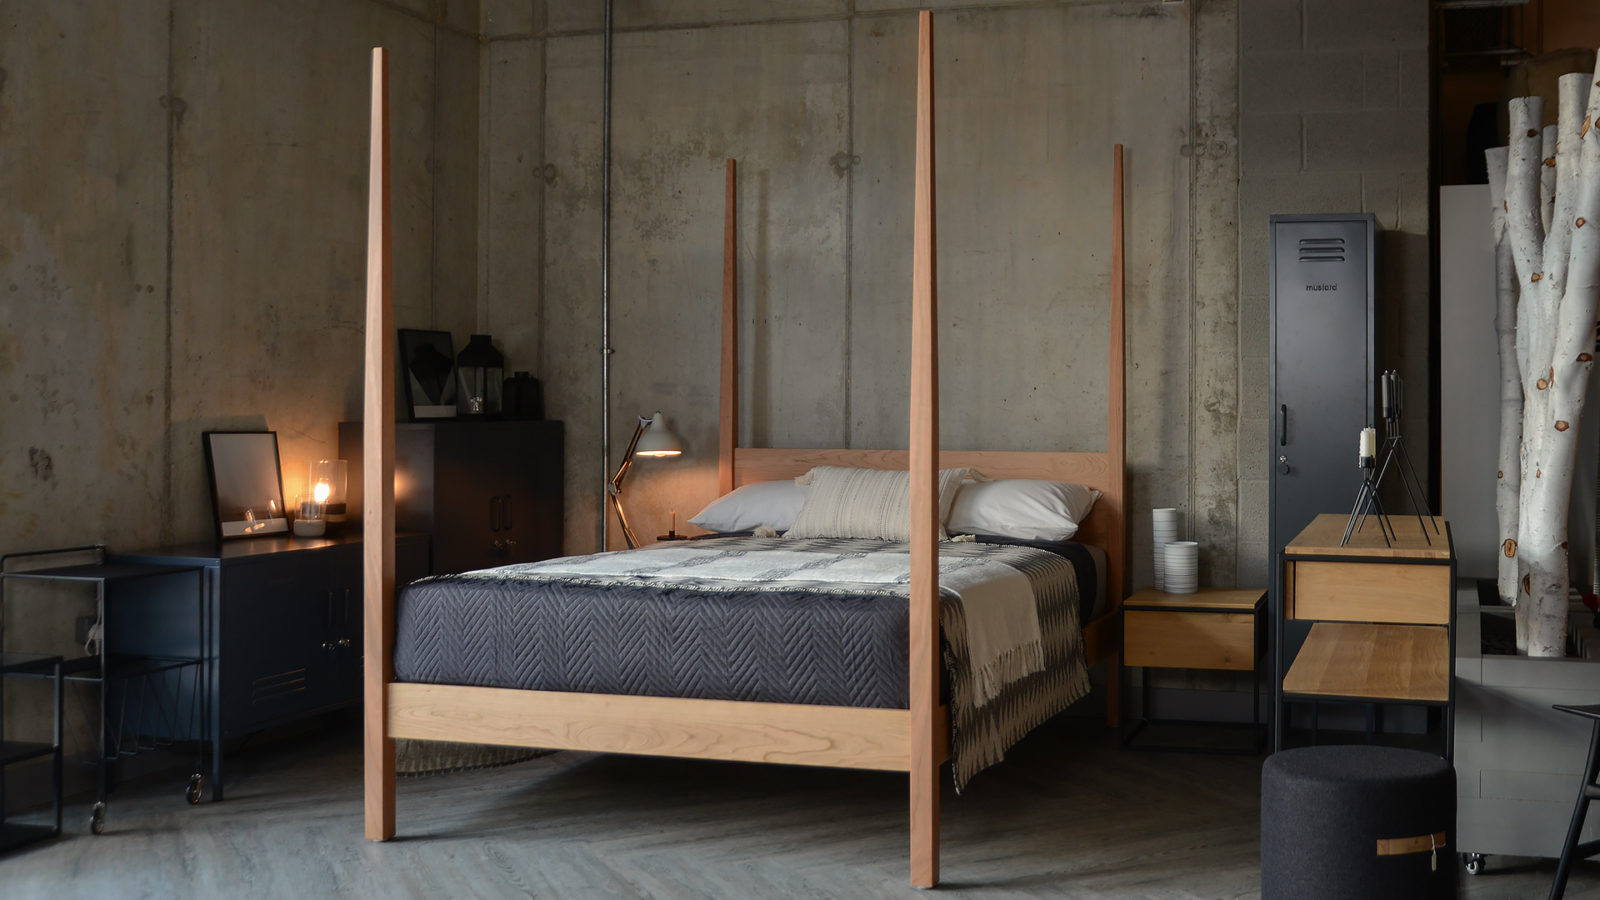 Centrepiece solid cherry wood 4 poster bed - the Hatfield, exclusive to Natural Bed Company